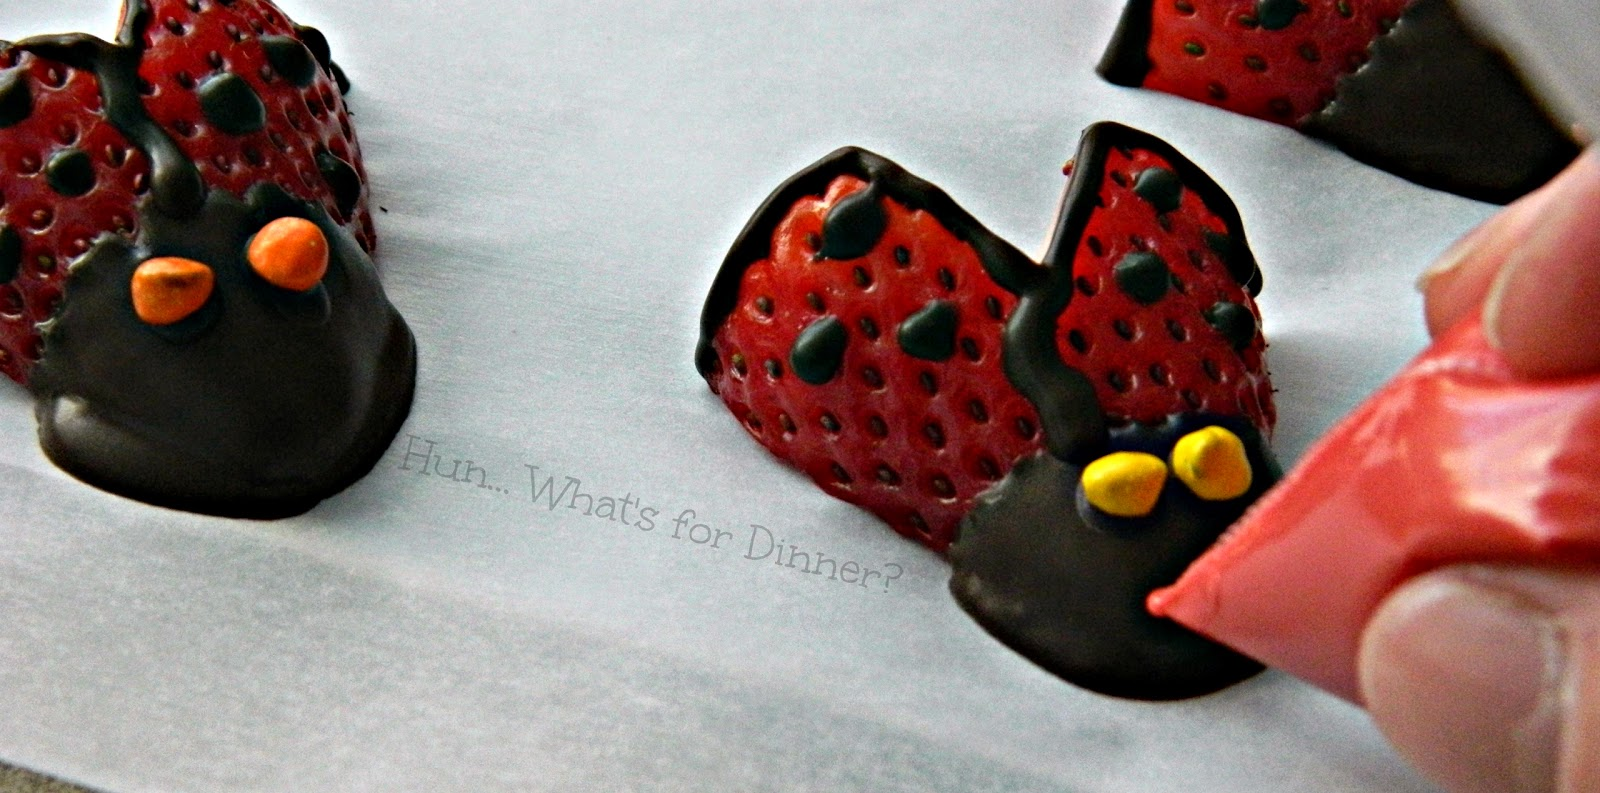 Hun... What's for Dinner?: Chocolate Covered Strawberry Lady Bugs Tutorial